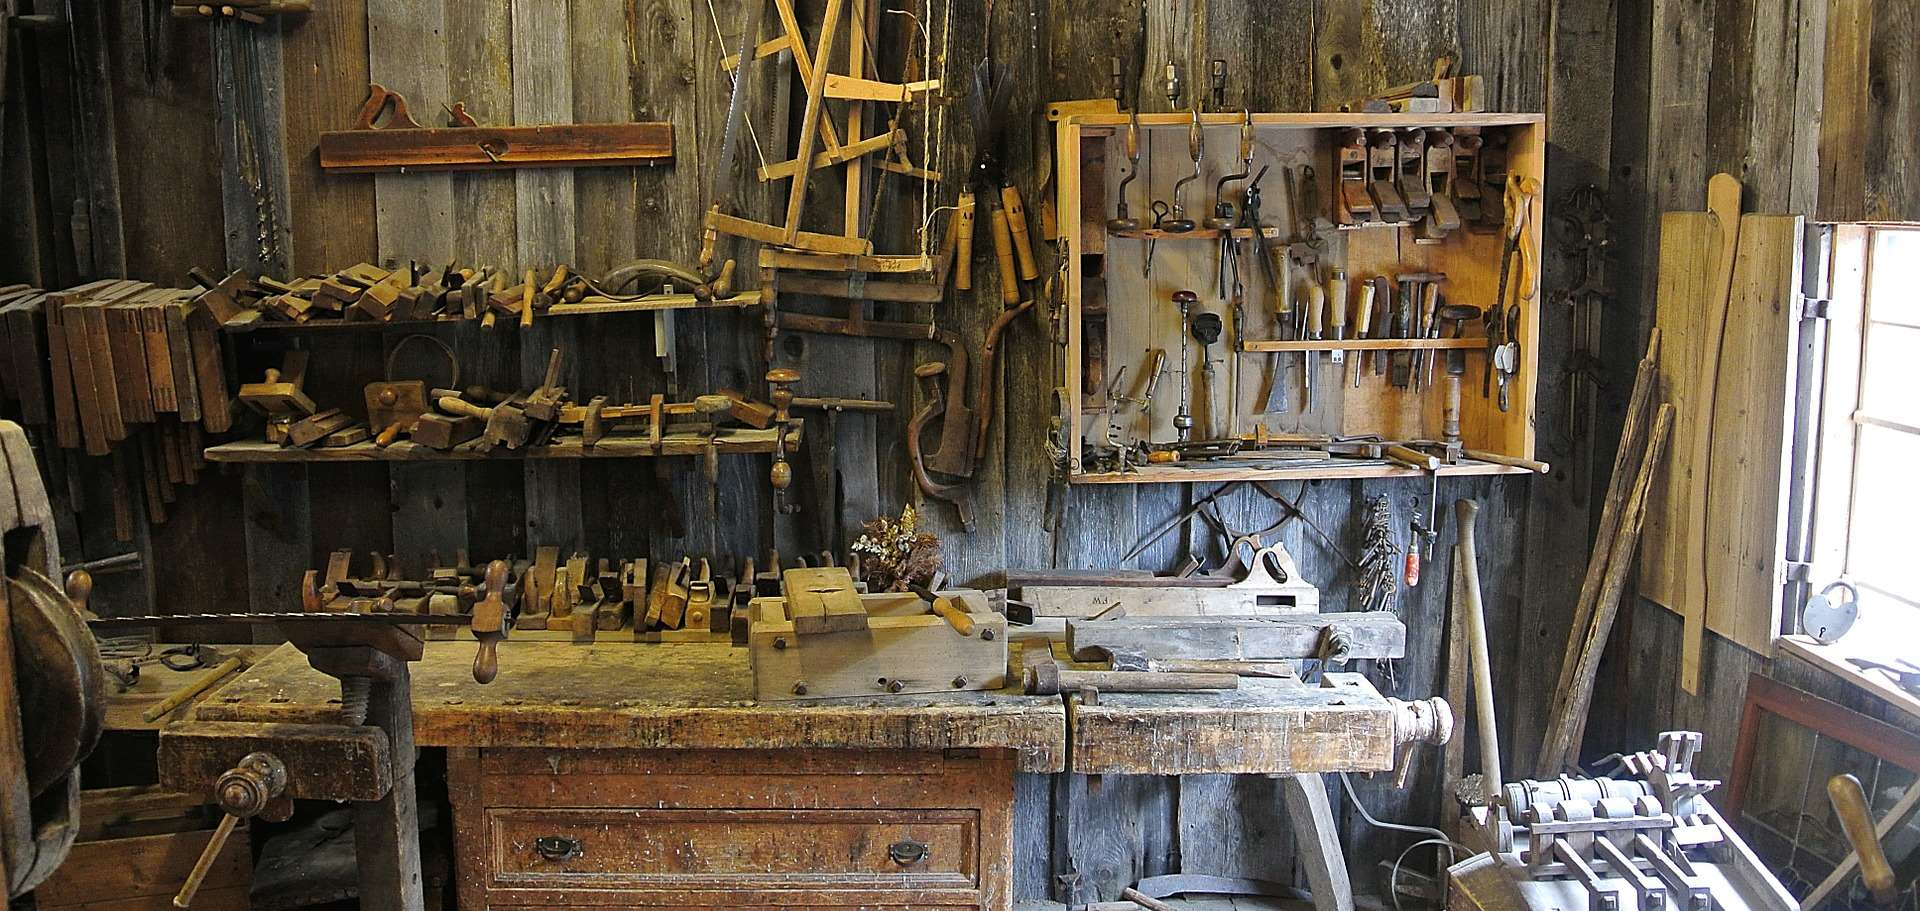 internal image showing wood working equipment